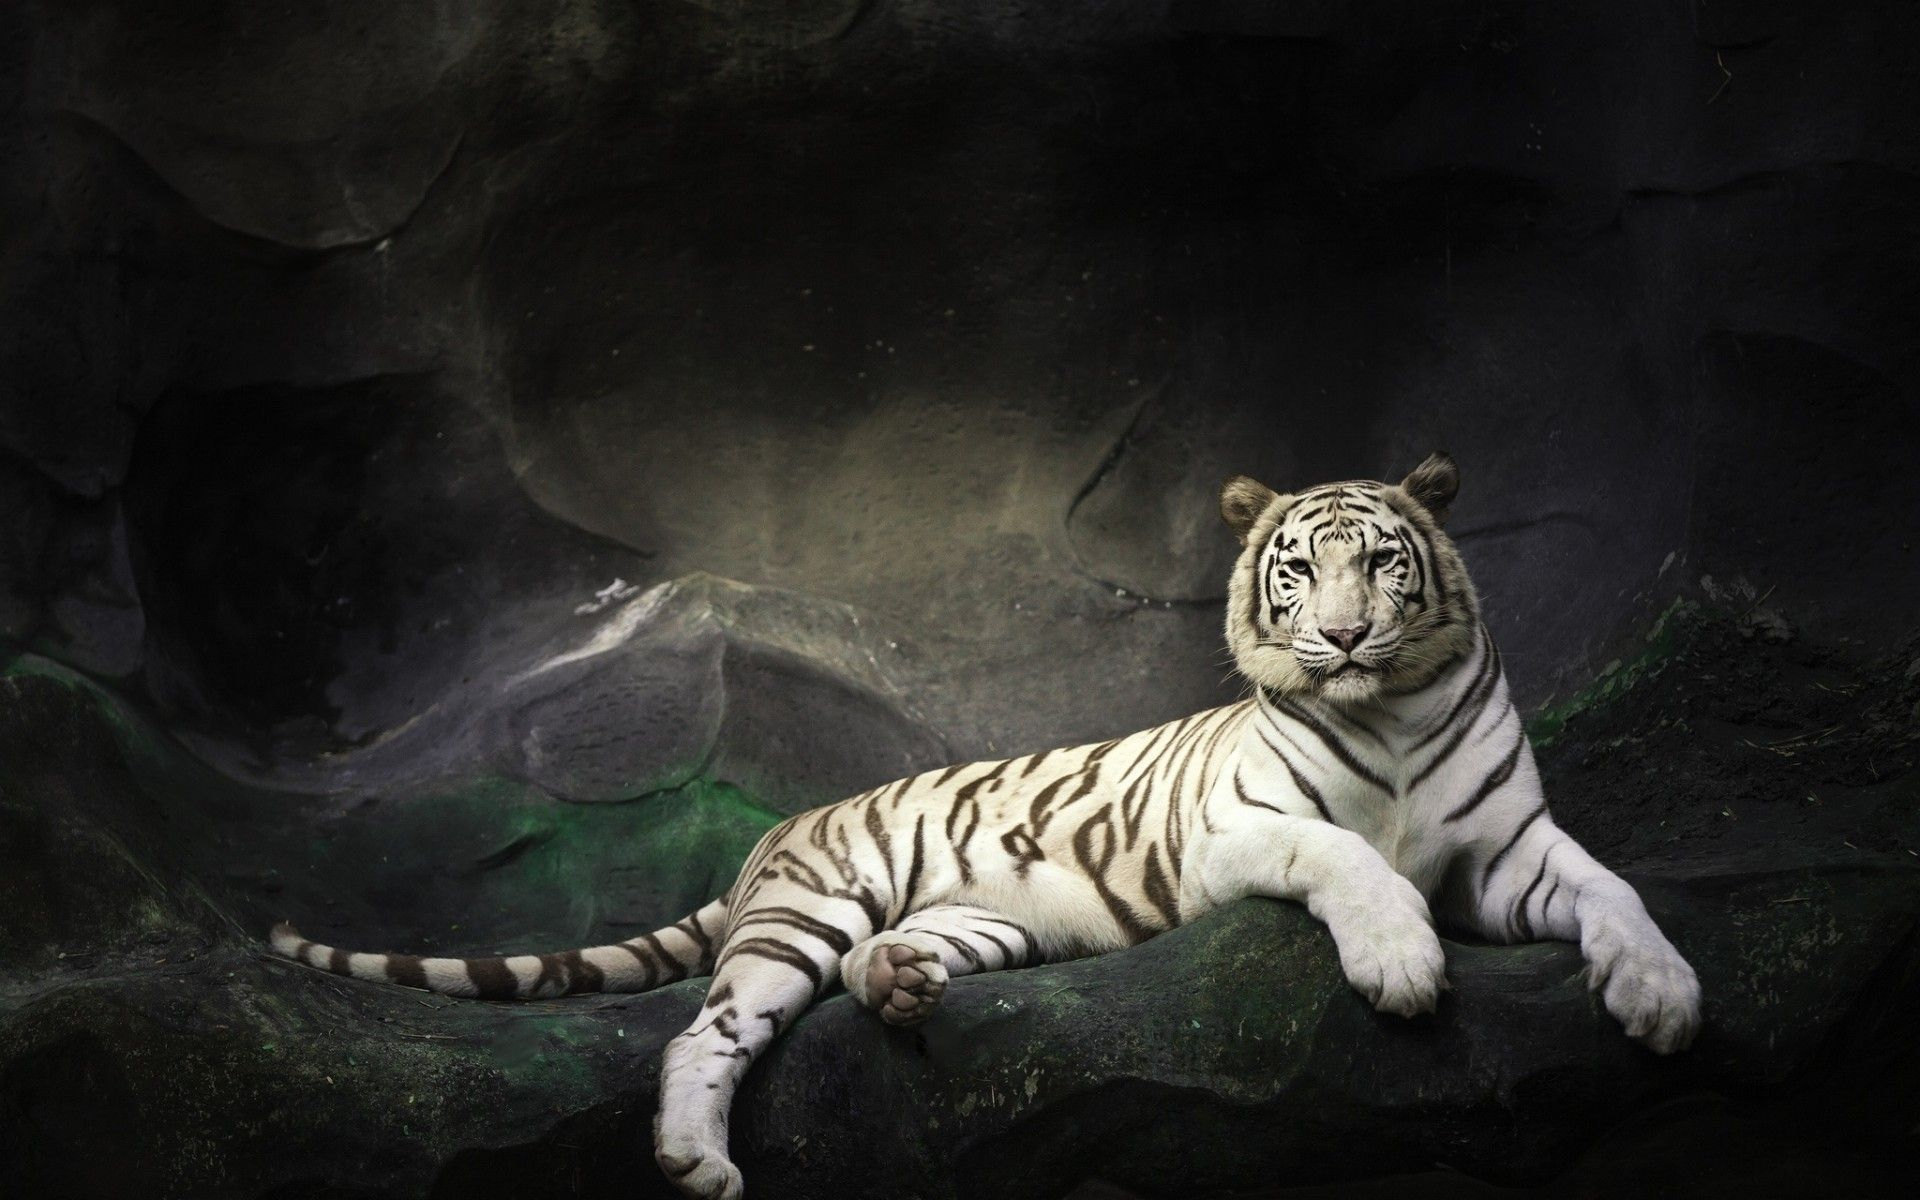 d animated tiger wallpapers d wallpaper hd   hd wallpapers